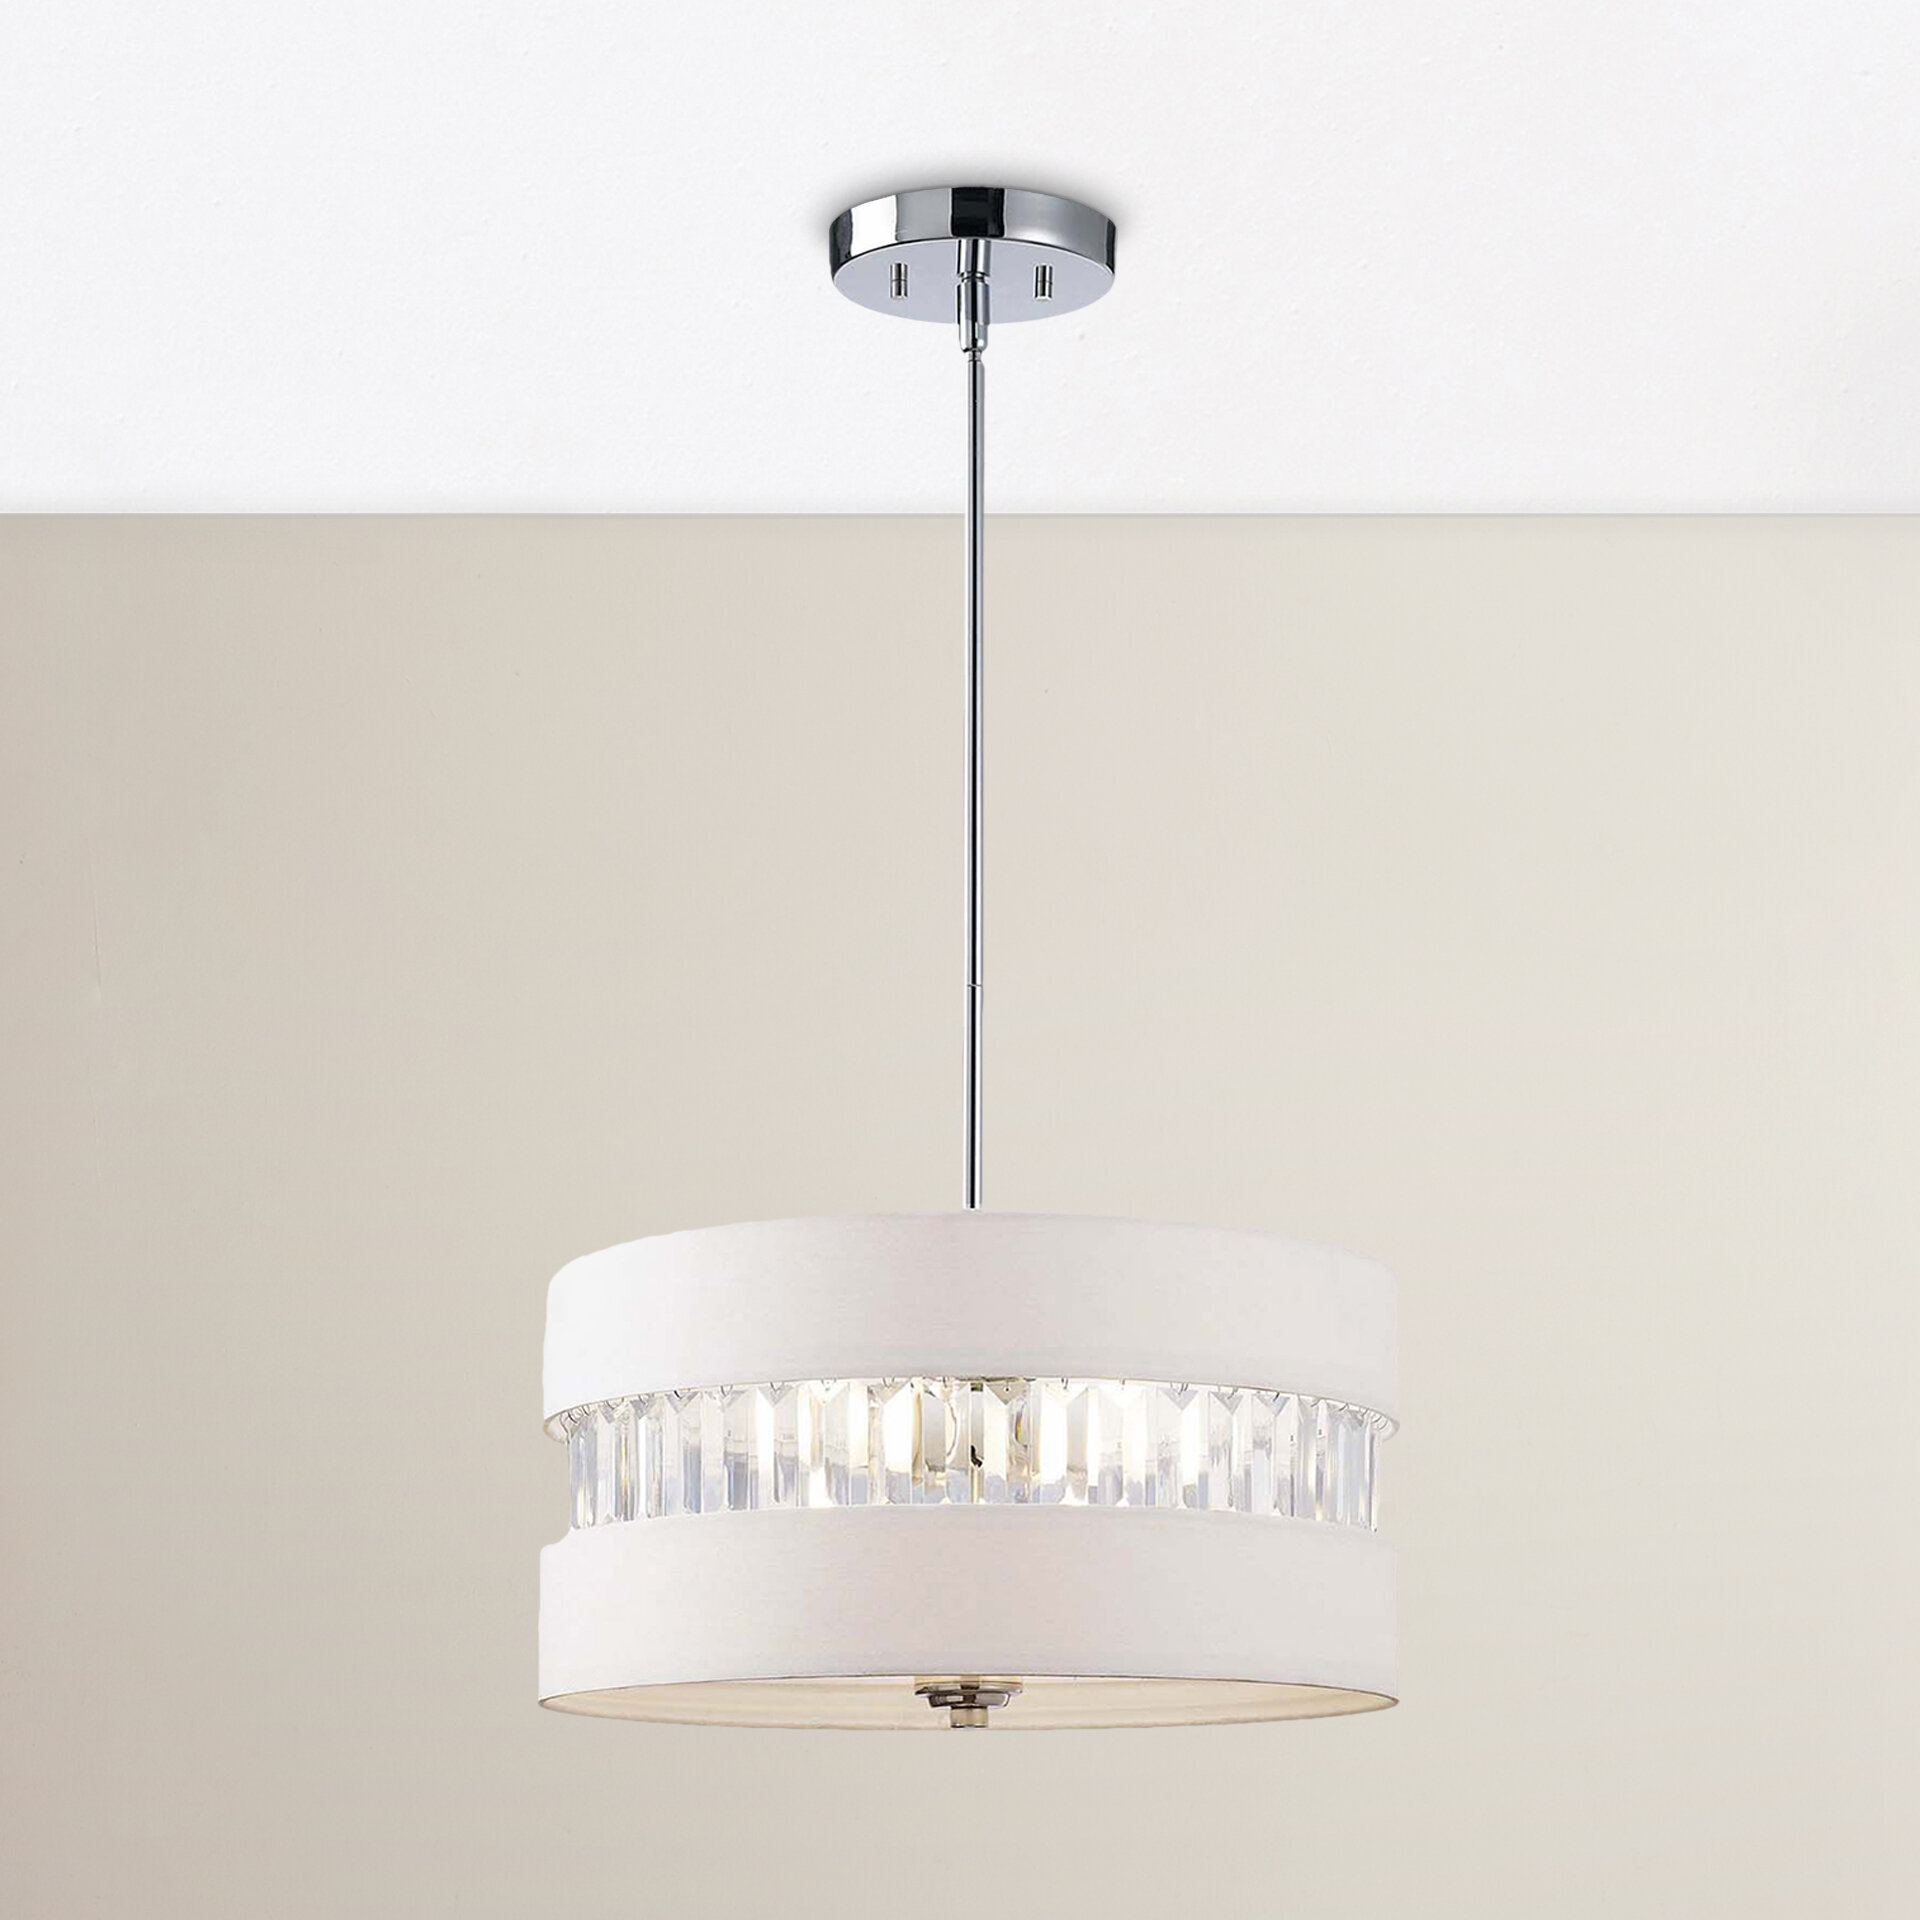 sausalito troy htm on to five productdetail hover zoom light ceiling sale drum pendant